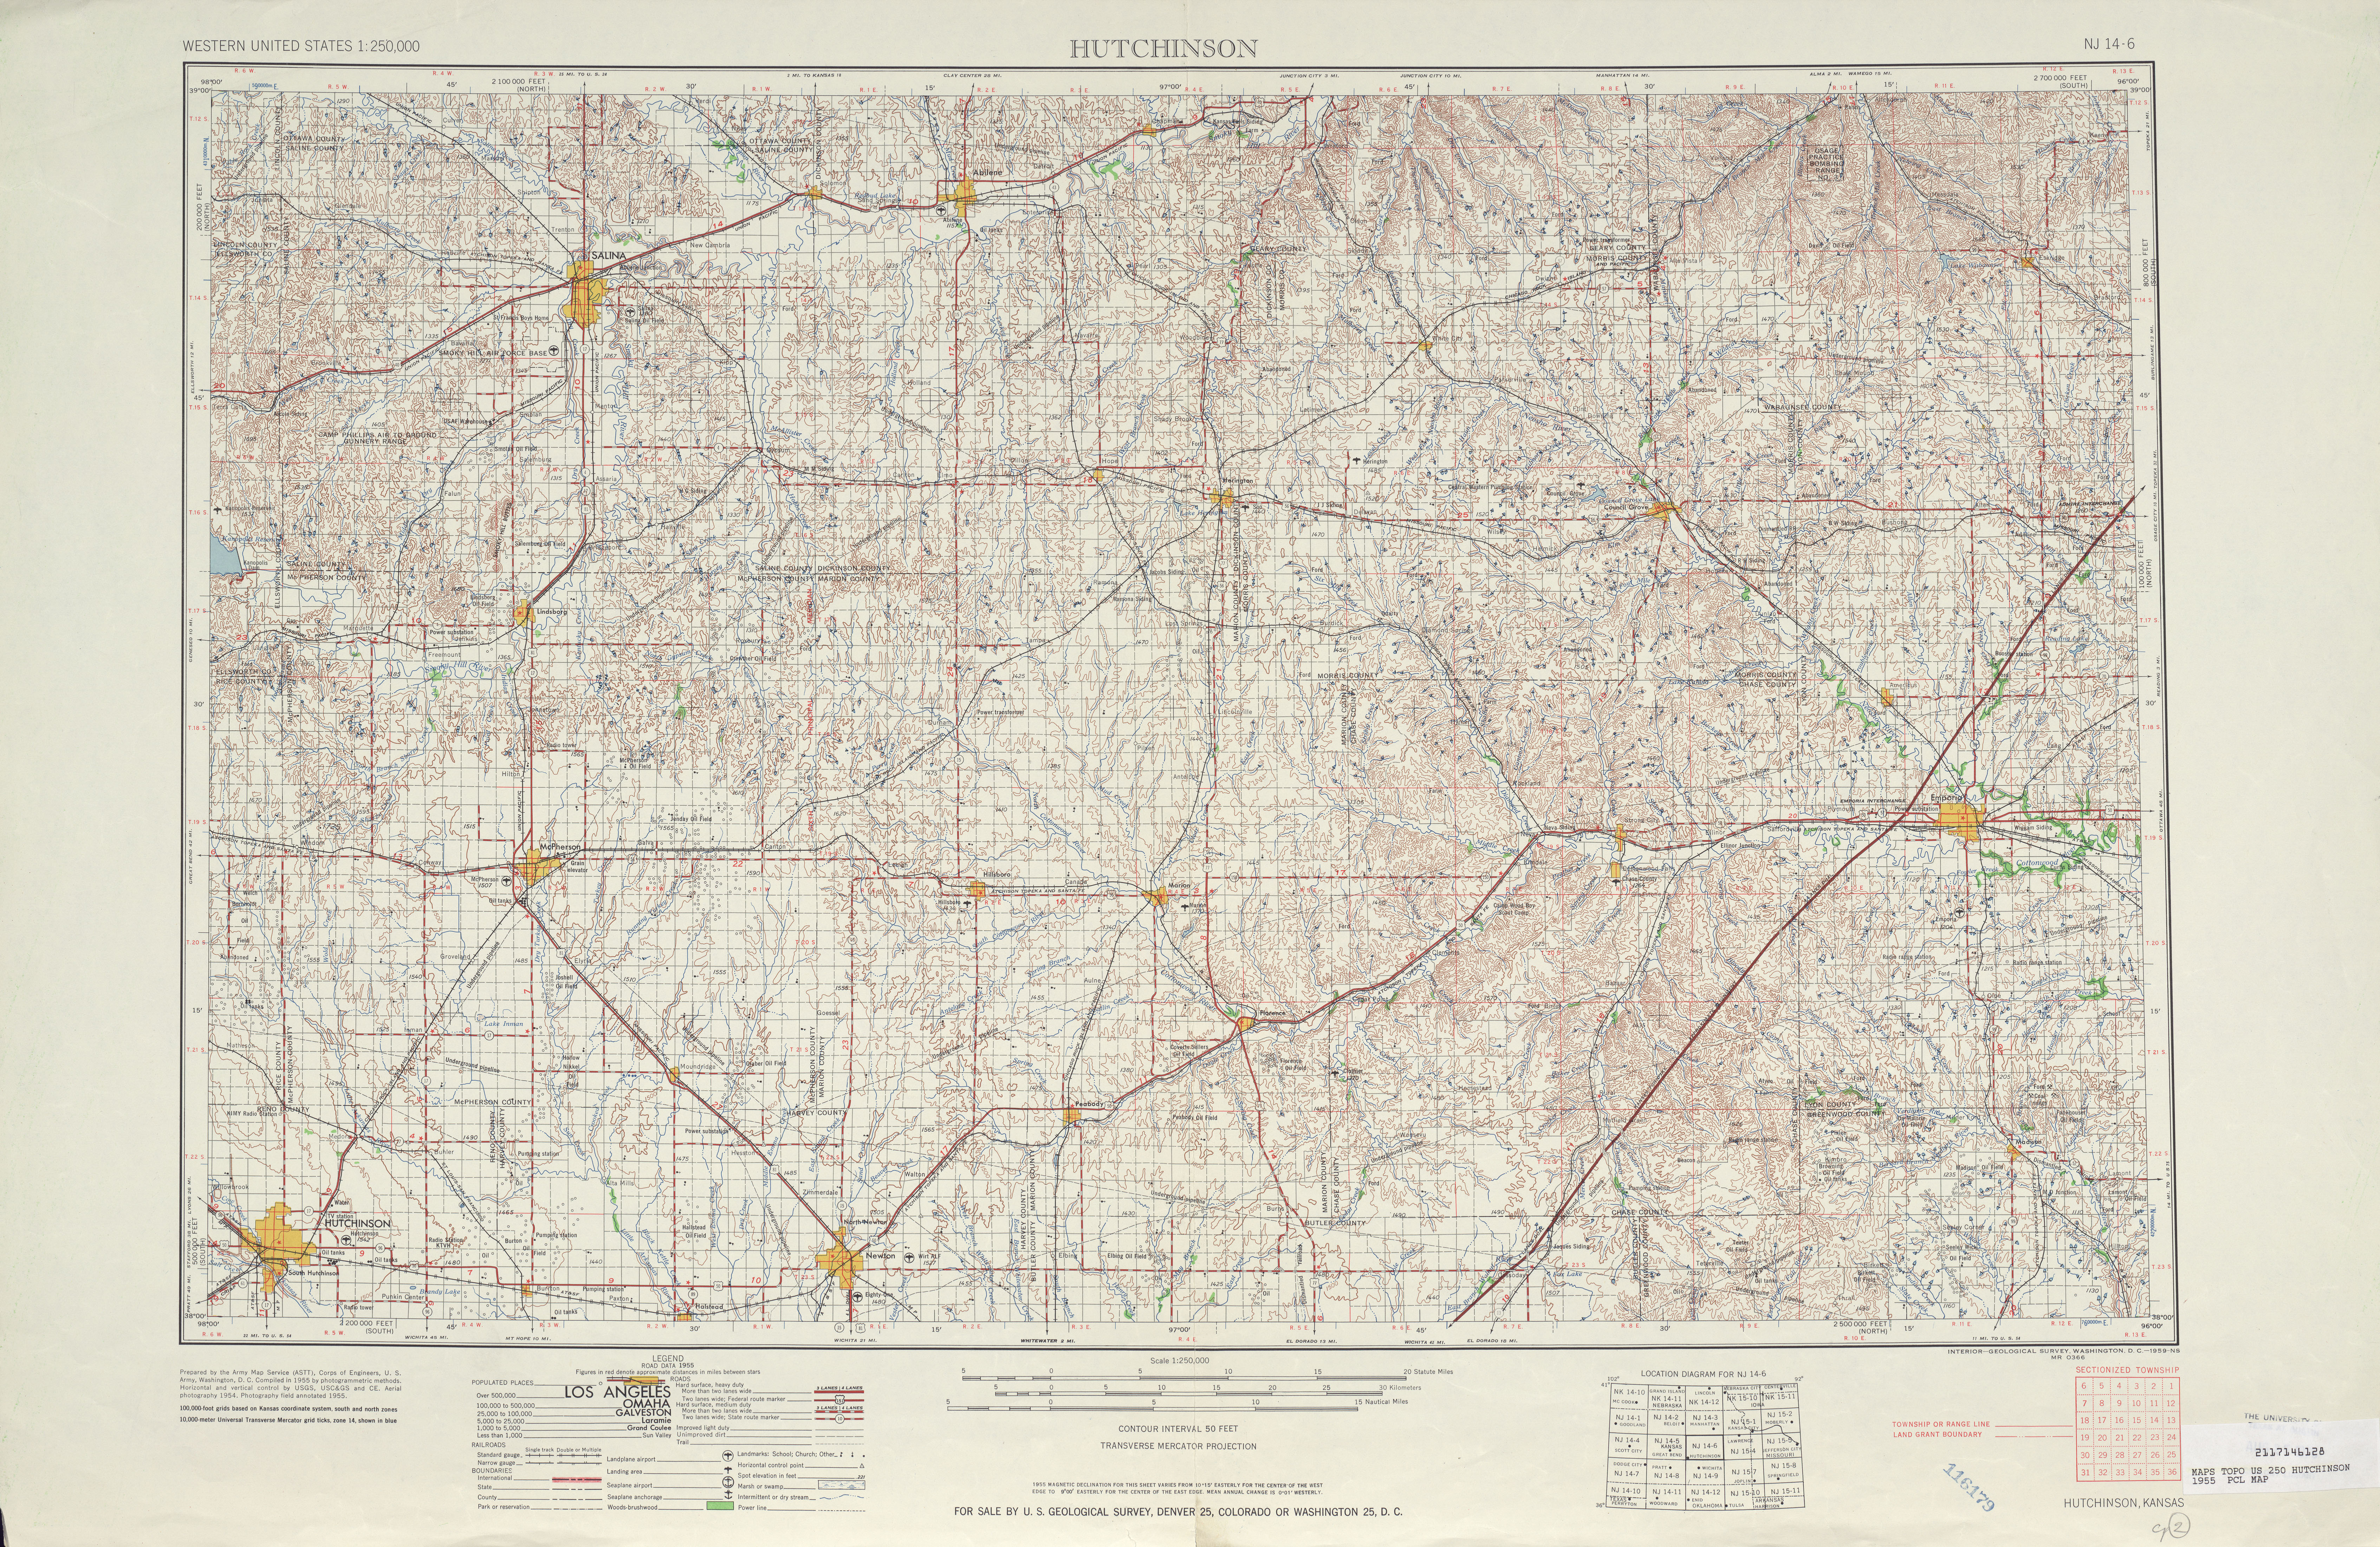 Hutchinson Topographic Map Sheet, United States 1955